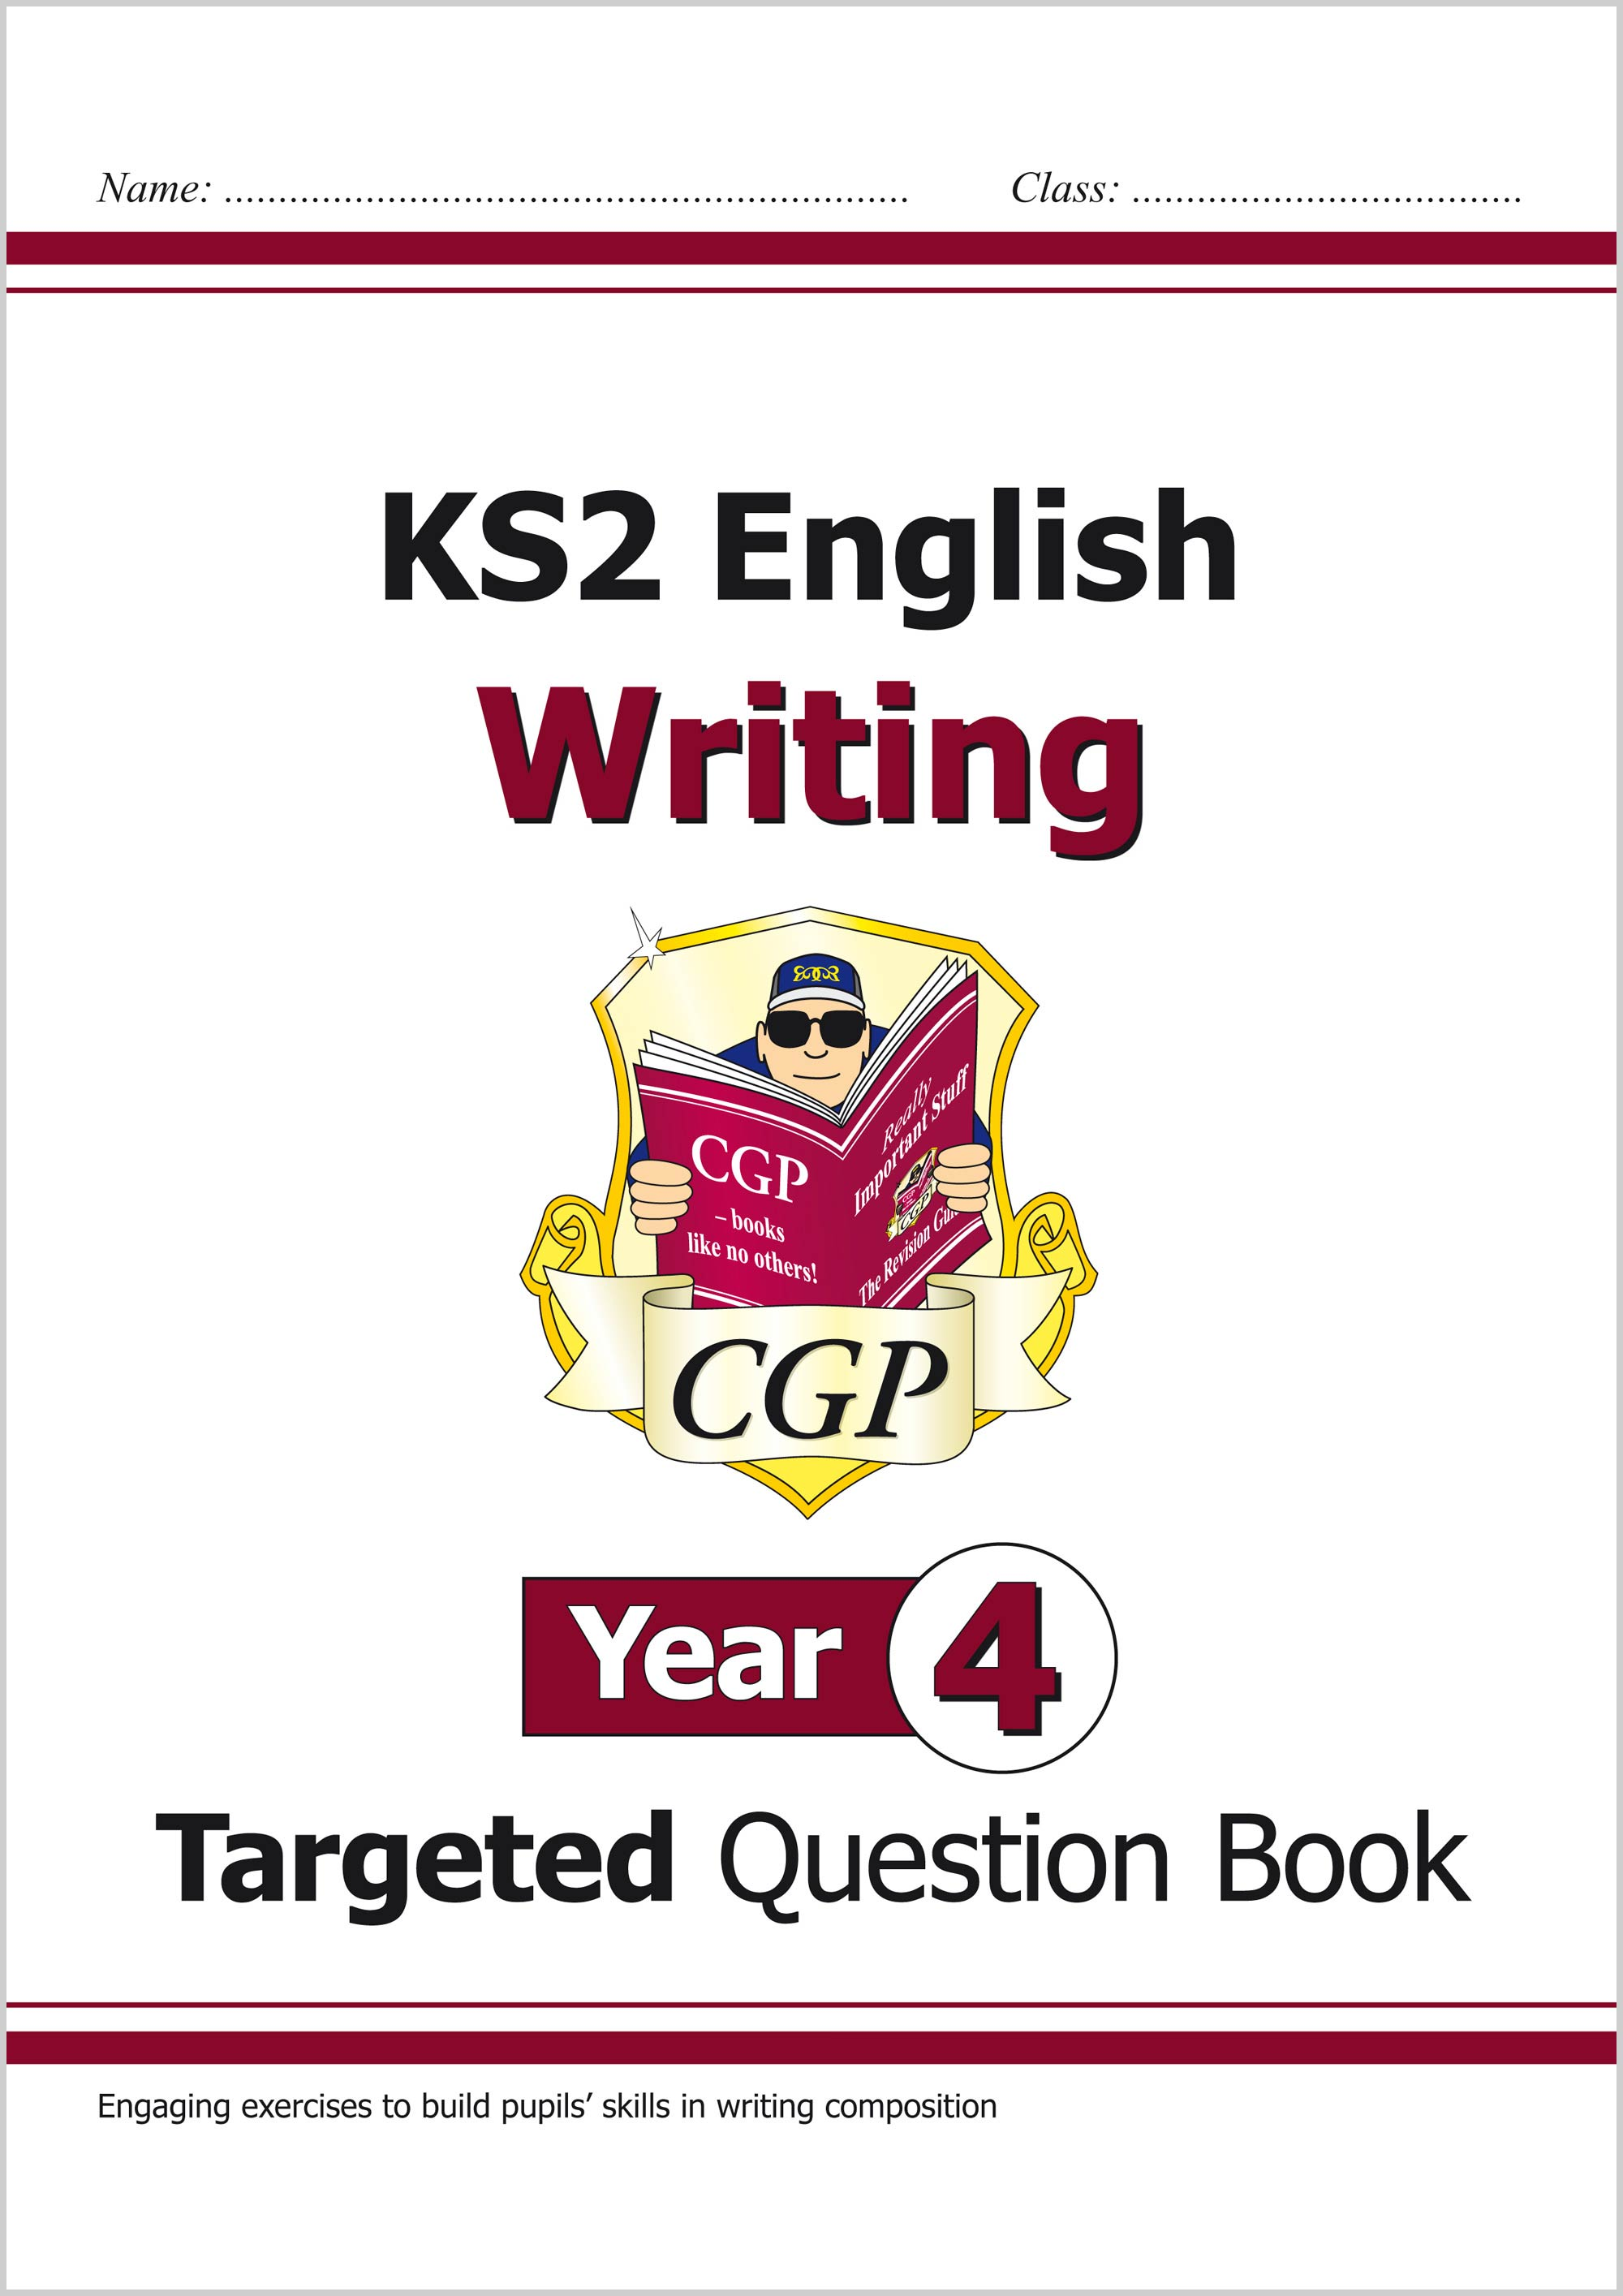 E4WW21 - KS2 English Writing Targeted Question Book - Year 4